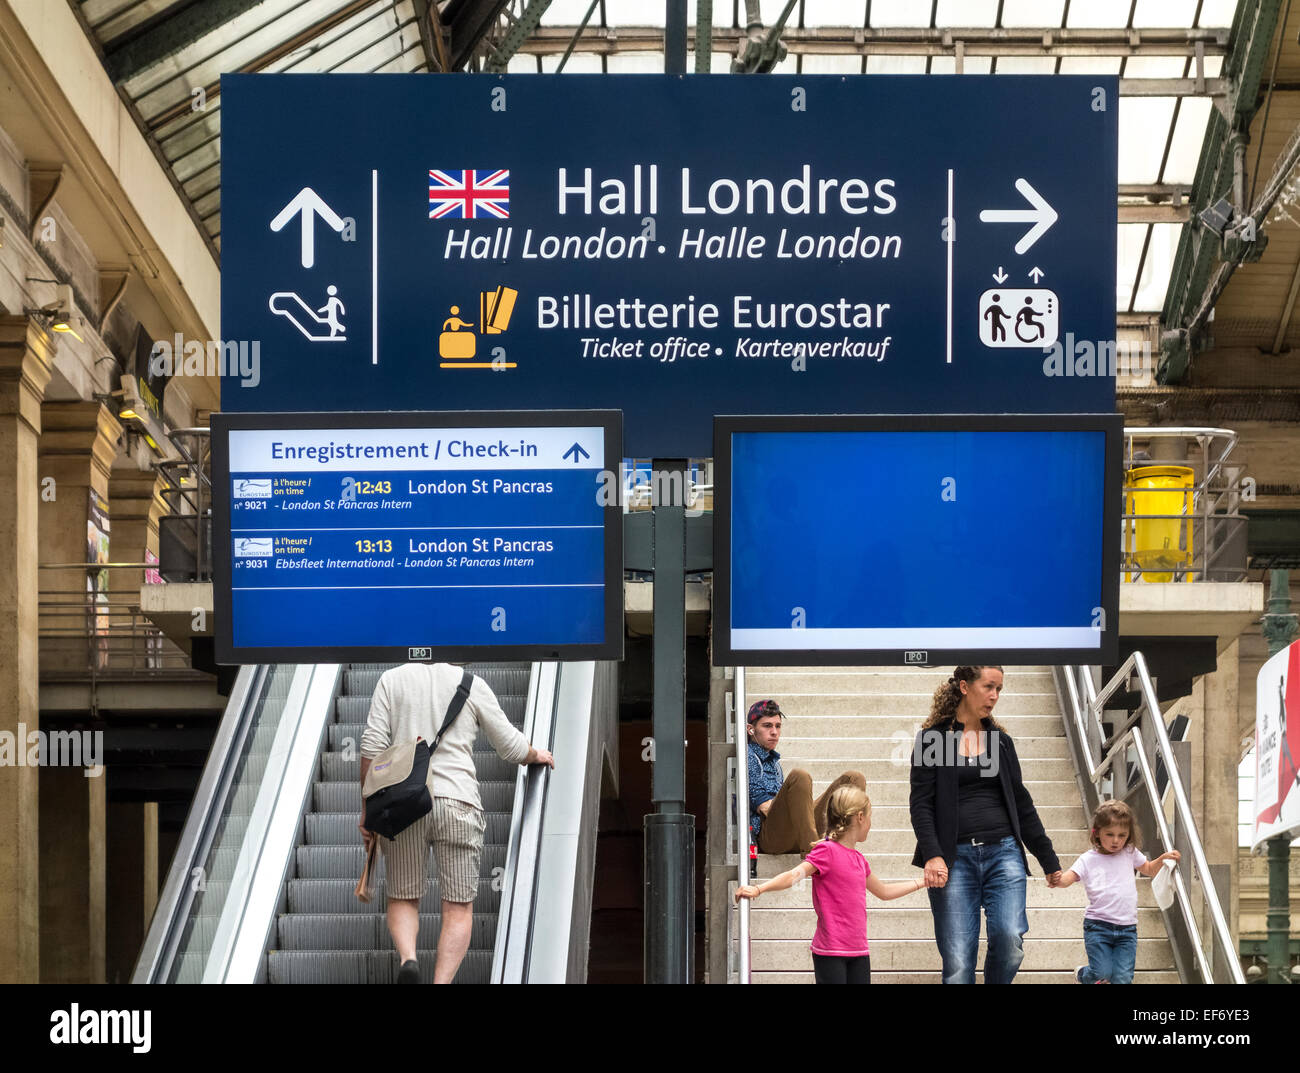 Paris Gare du Nord Station with travelers under sign pointing to Paris to London Eurostar train departure hall. - Stock Image